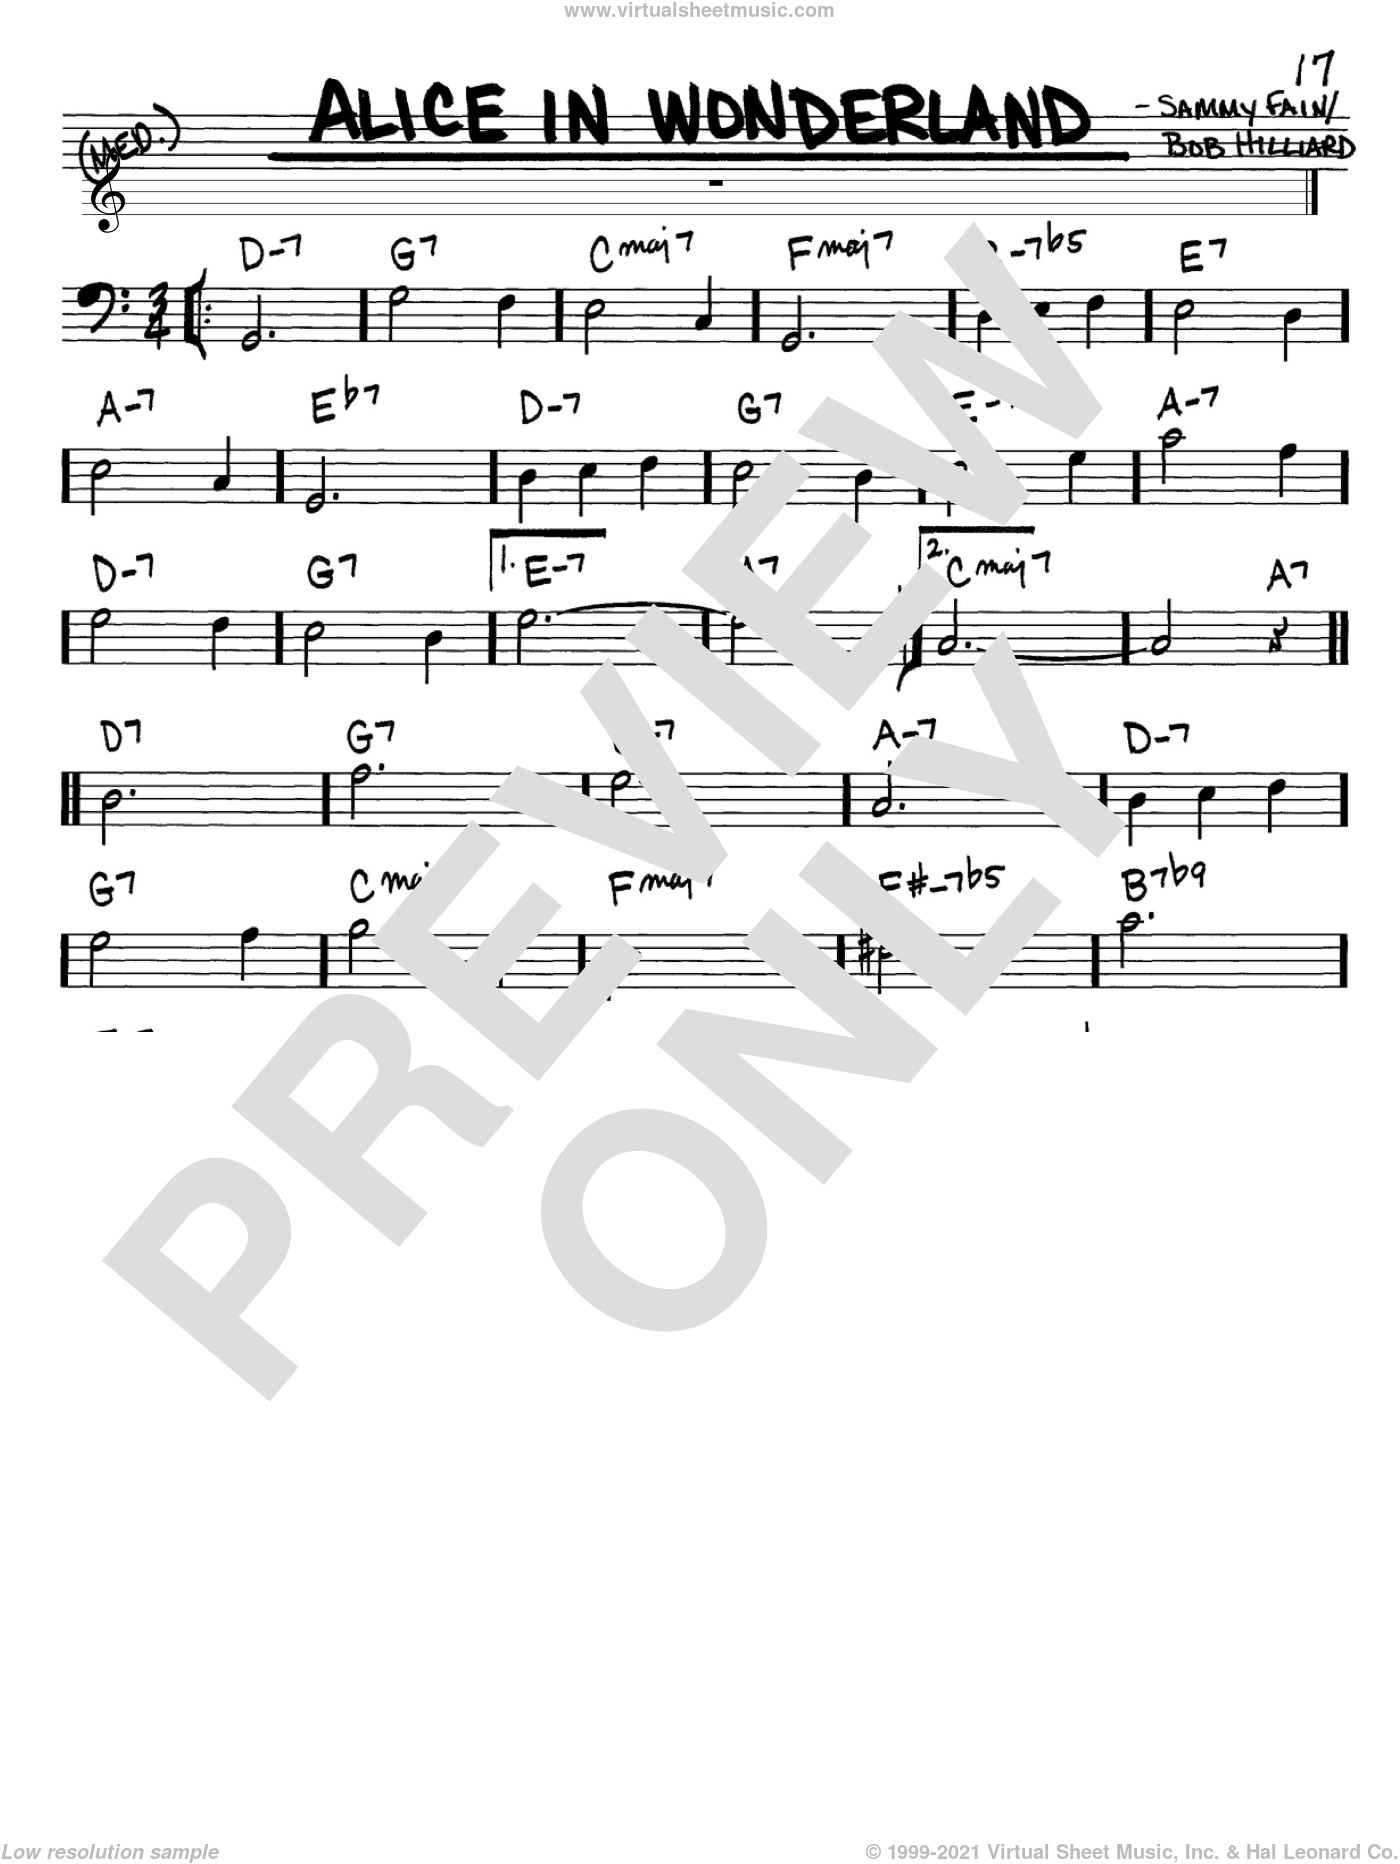 Alice In Wonderland sheet music for voice and other instruments (Bass Clef ) by Sammy Fain, Bill Evans and Bob Hilliard. Score Image Preview.